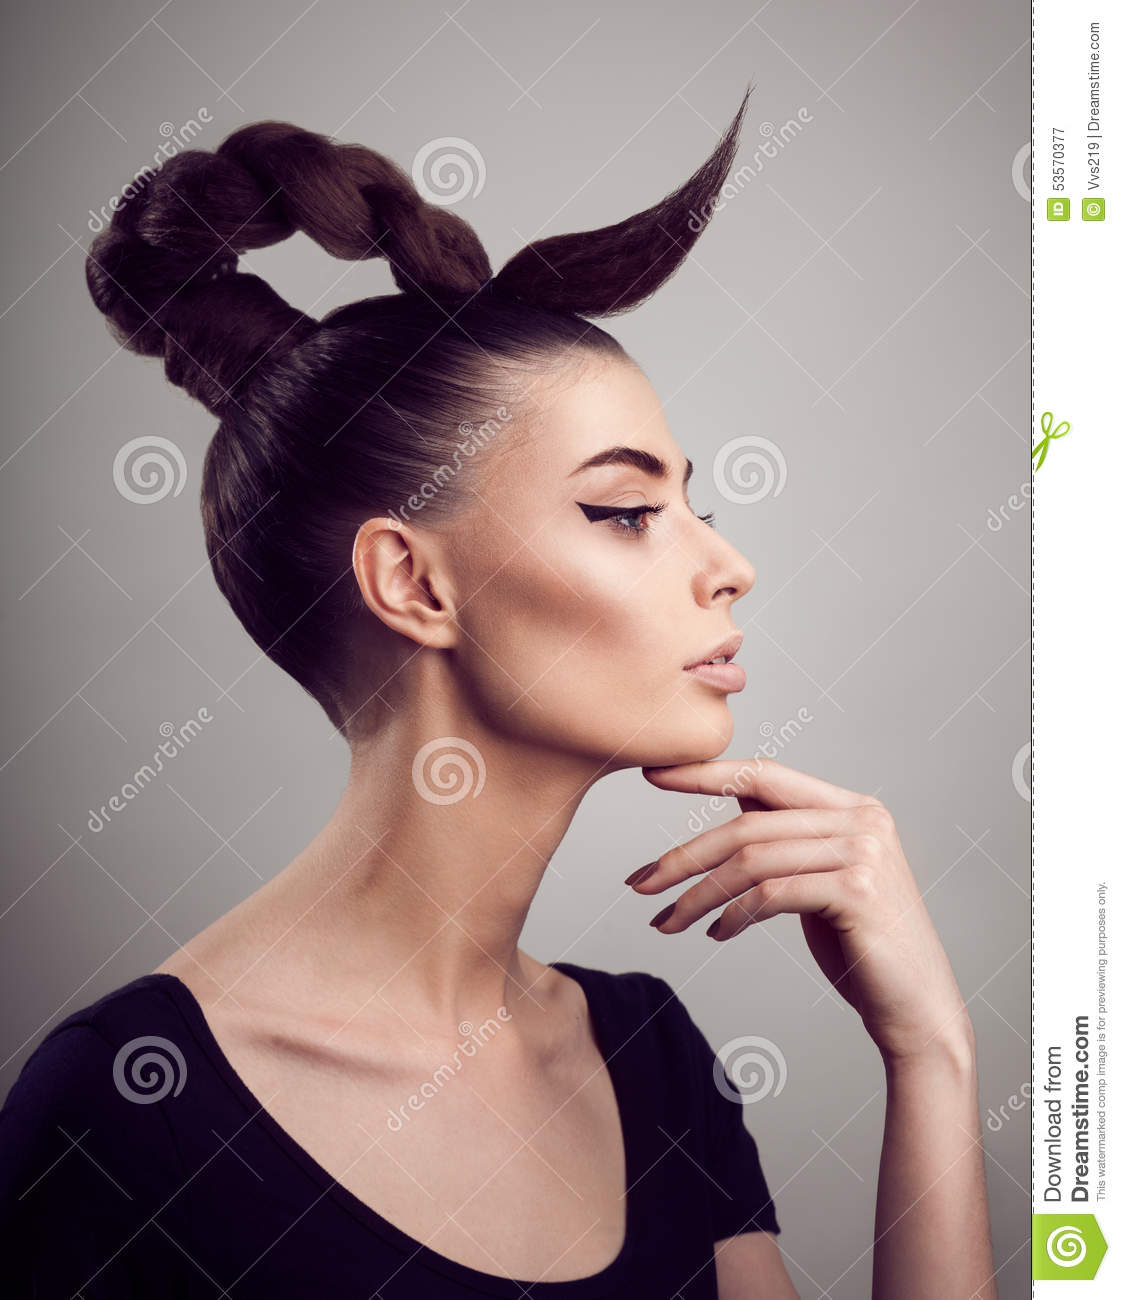 Portrait of beautiful woman with perfect skin and make-up. Creative hairstyle.